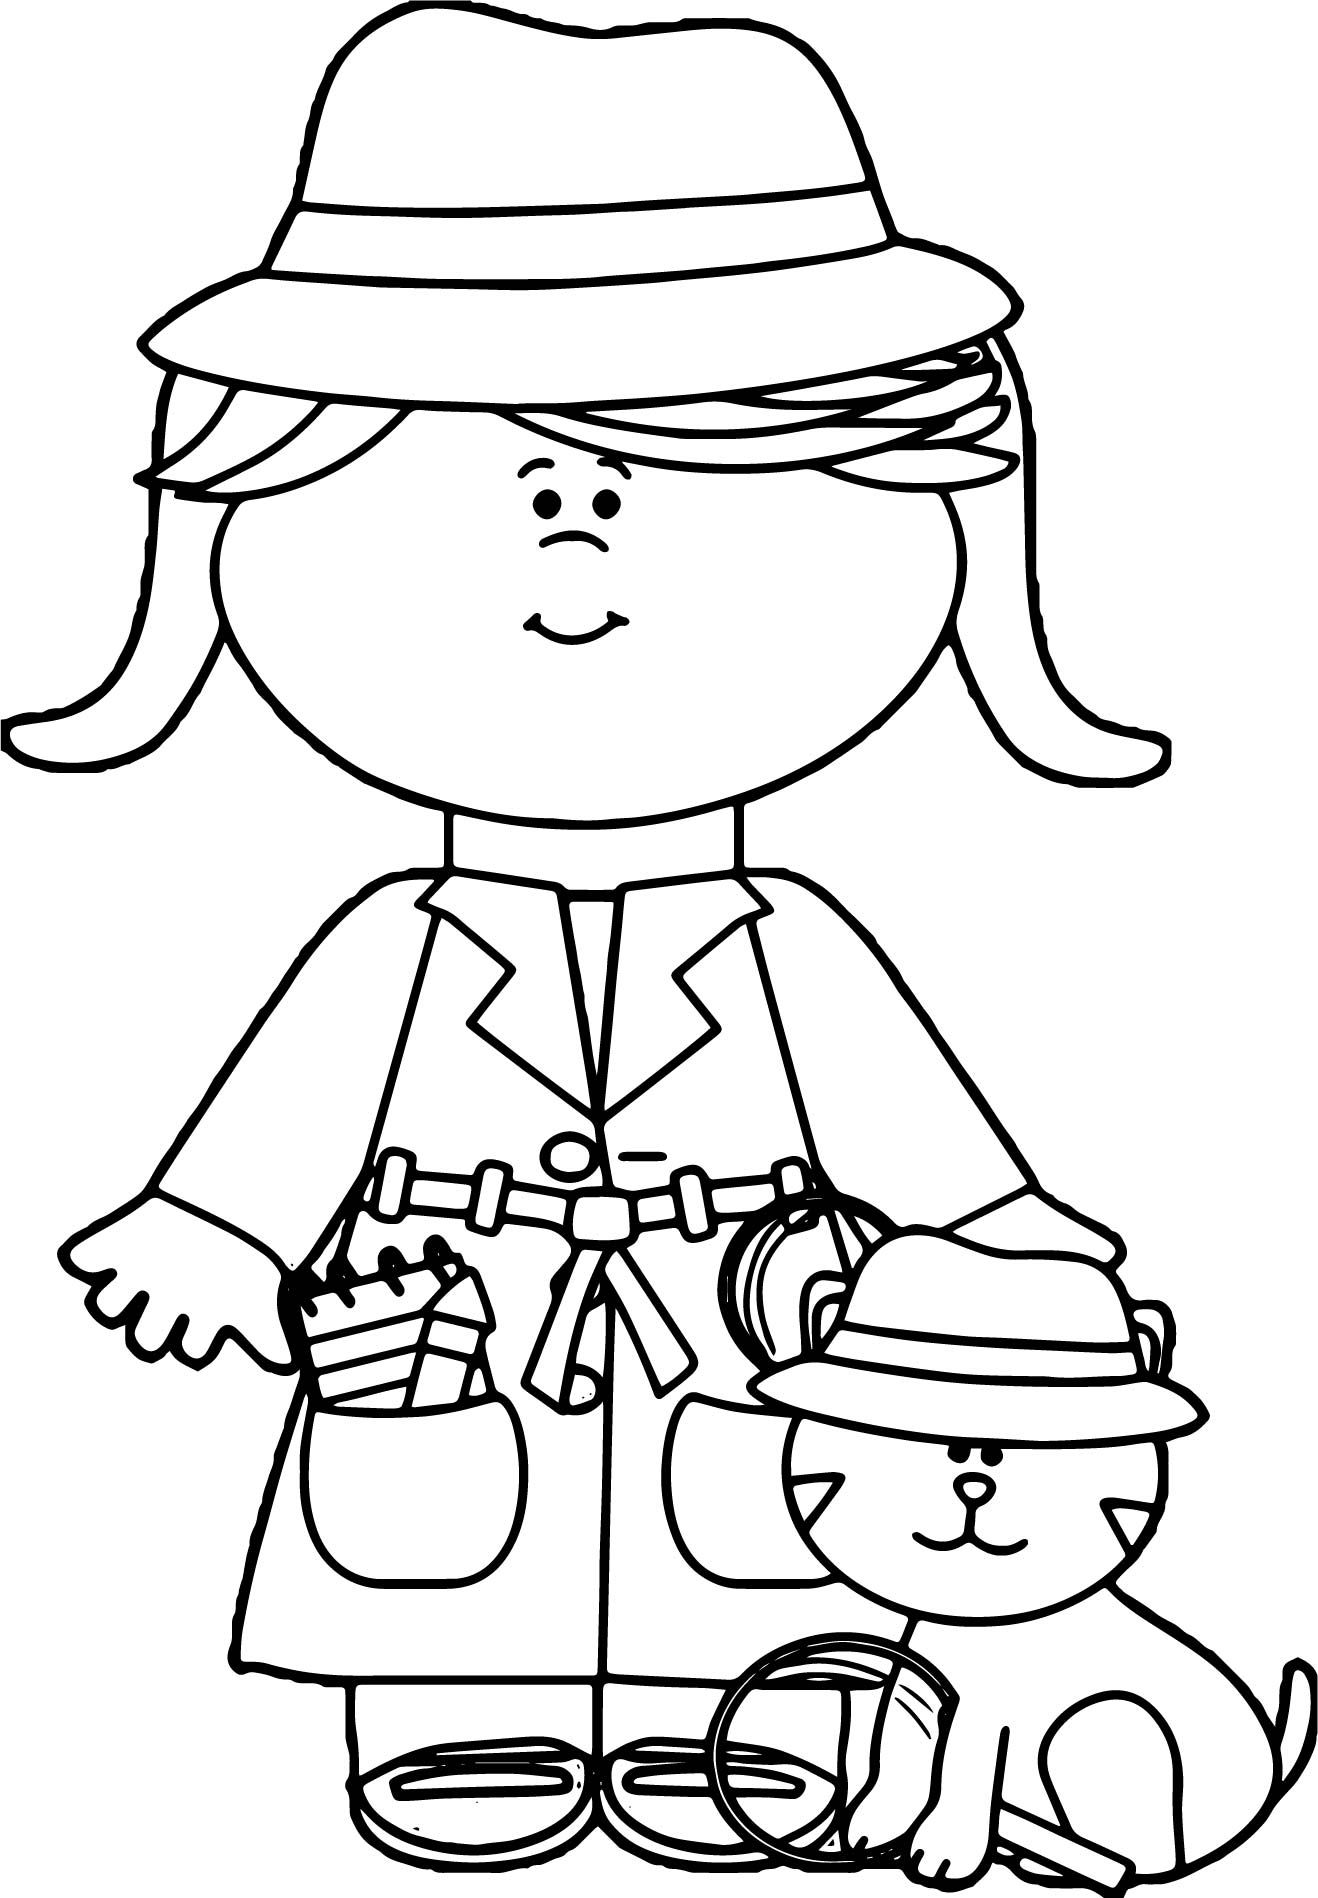 detective coloring pages two undercover detective coloring page netart detective pages coloring